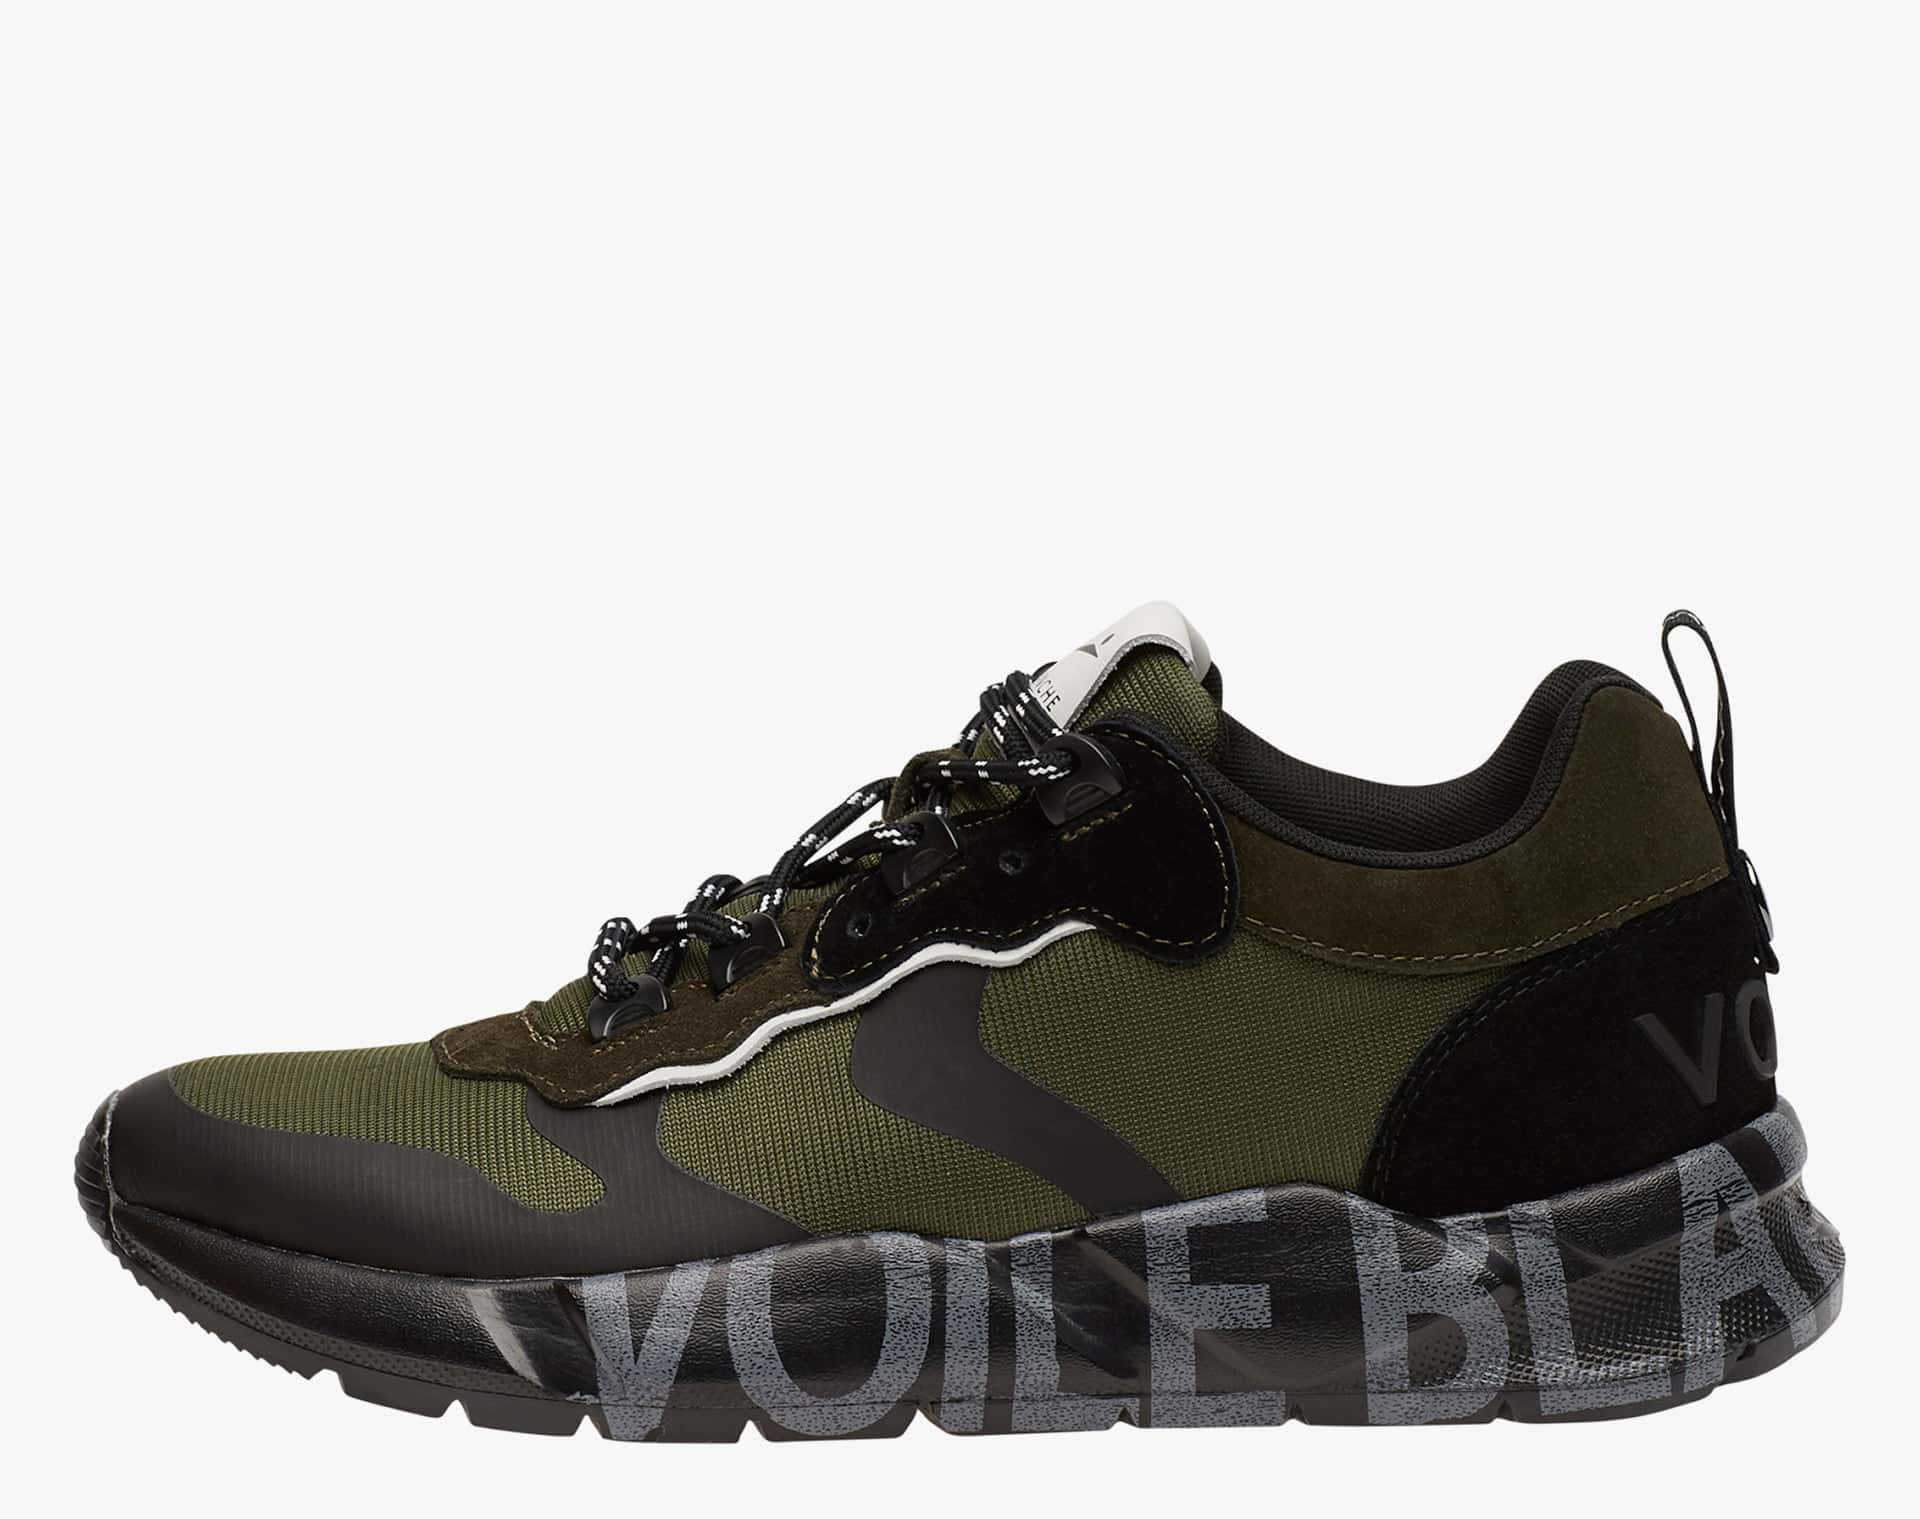 CLUB02 - Sneakers in leather and Cordura - Black-Military Green